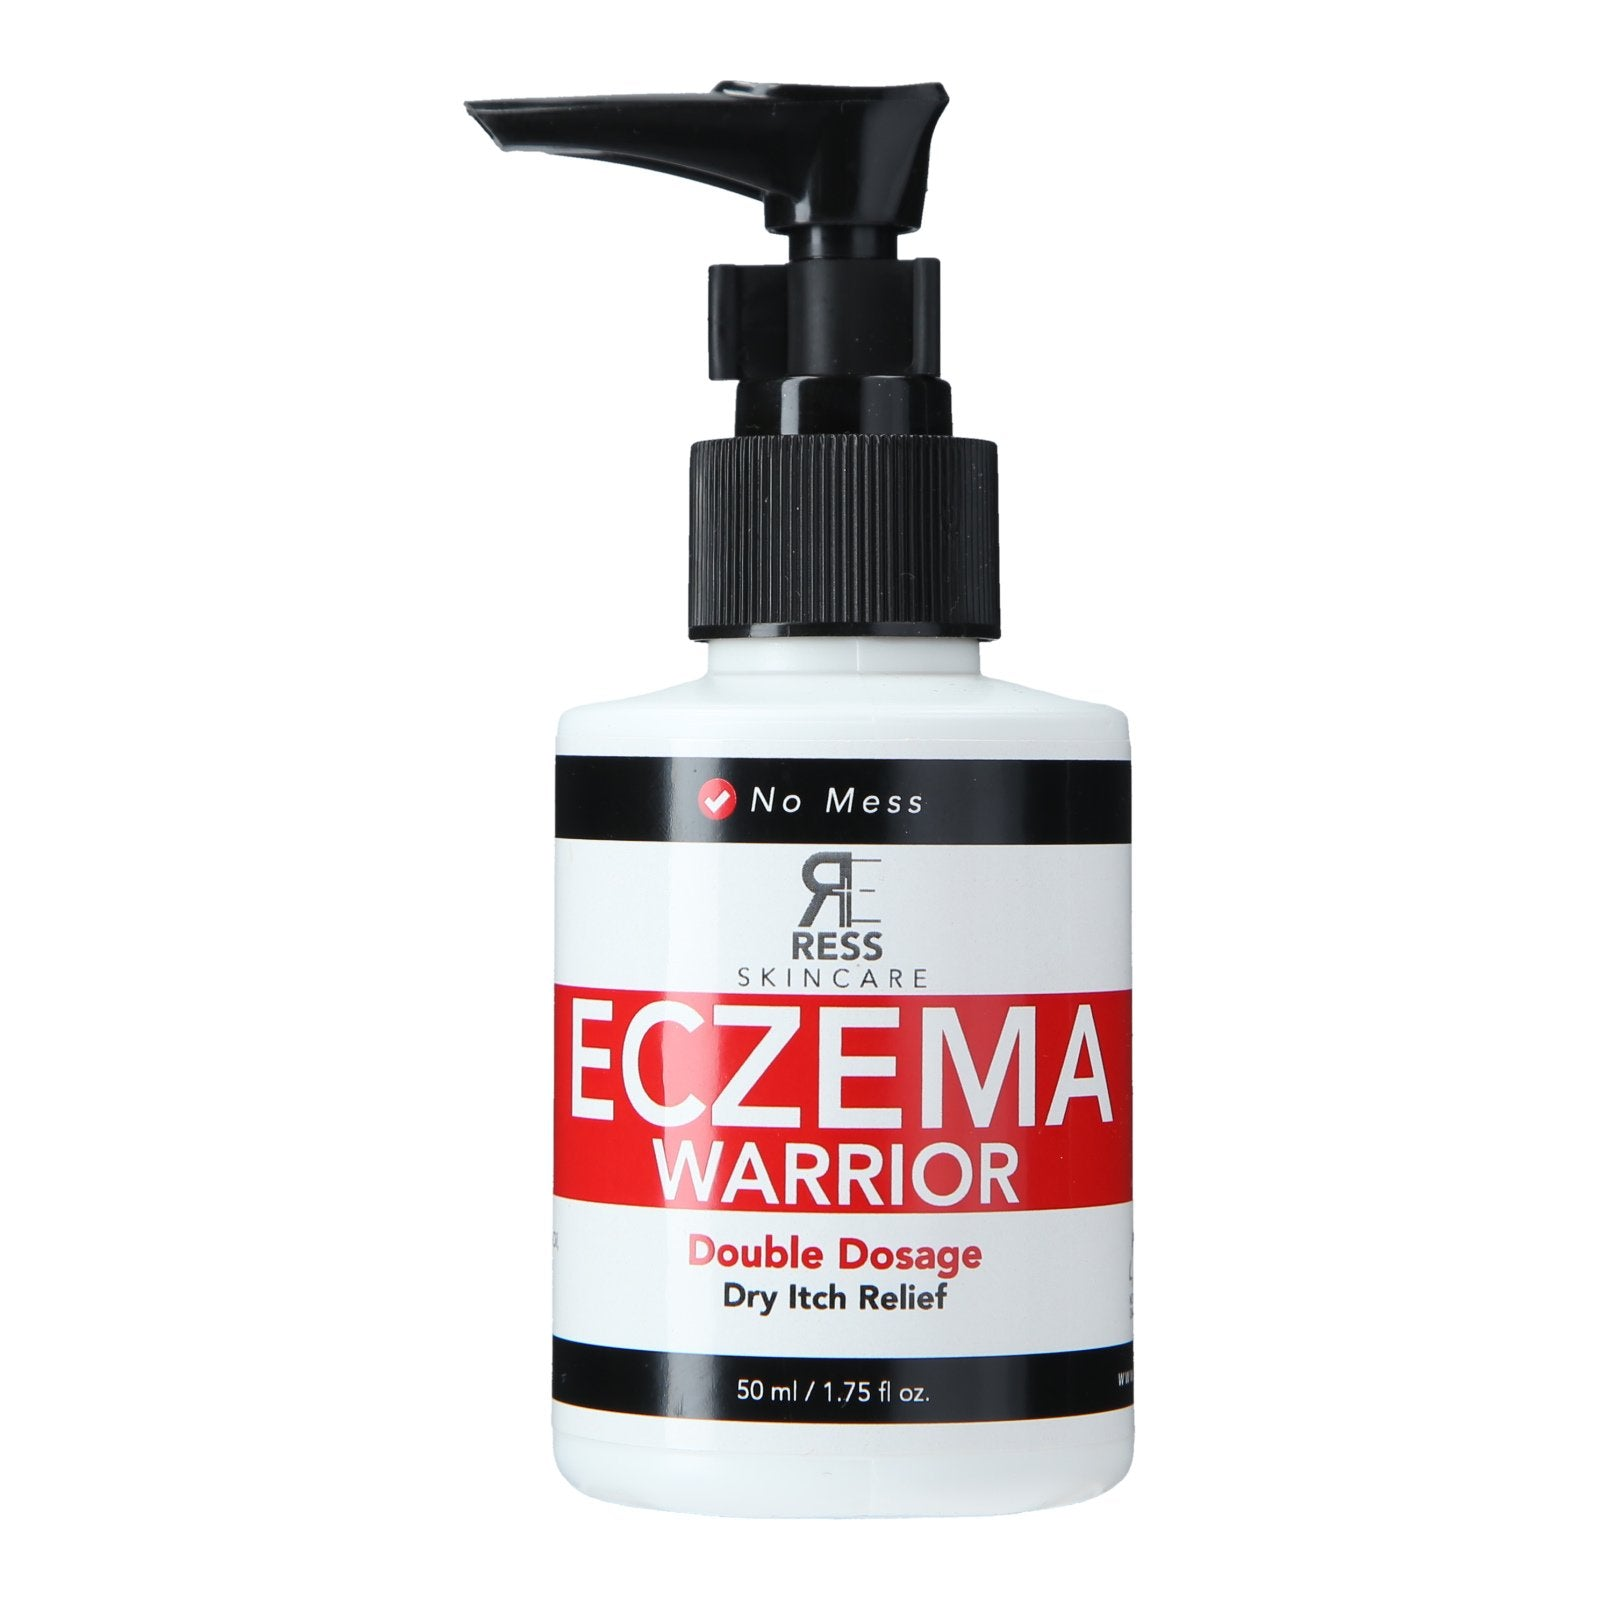 Eczema Warrior - Best for Night Usage (100ml)